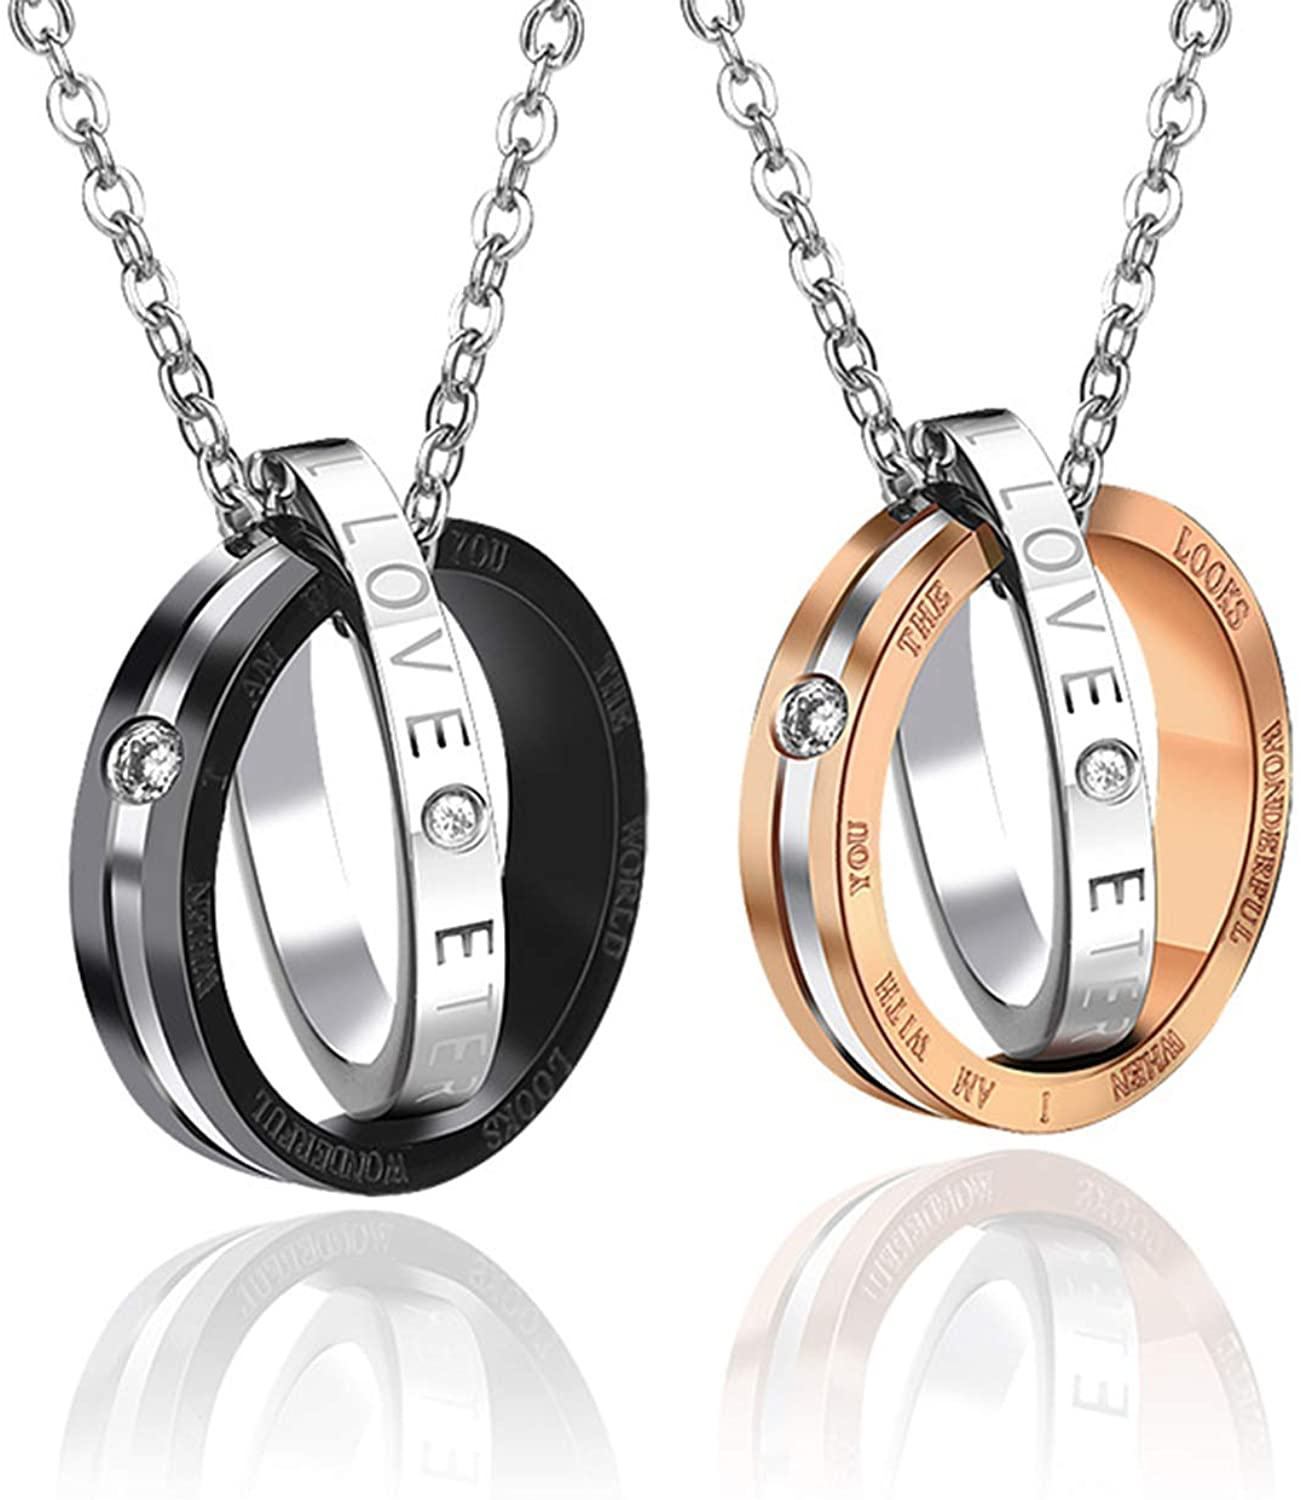 Wedding Anniversary Valentine's Present Couple Necklace His & Hers Matching Set Titanium Stainless Steel lover Pendant Necklaces